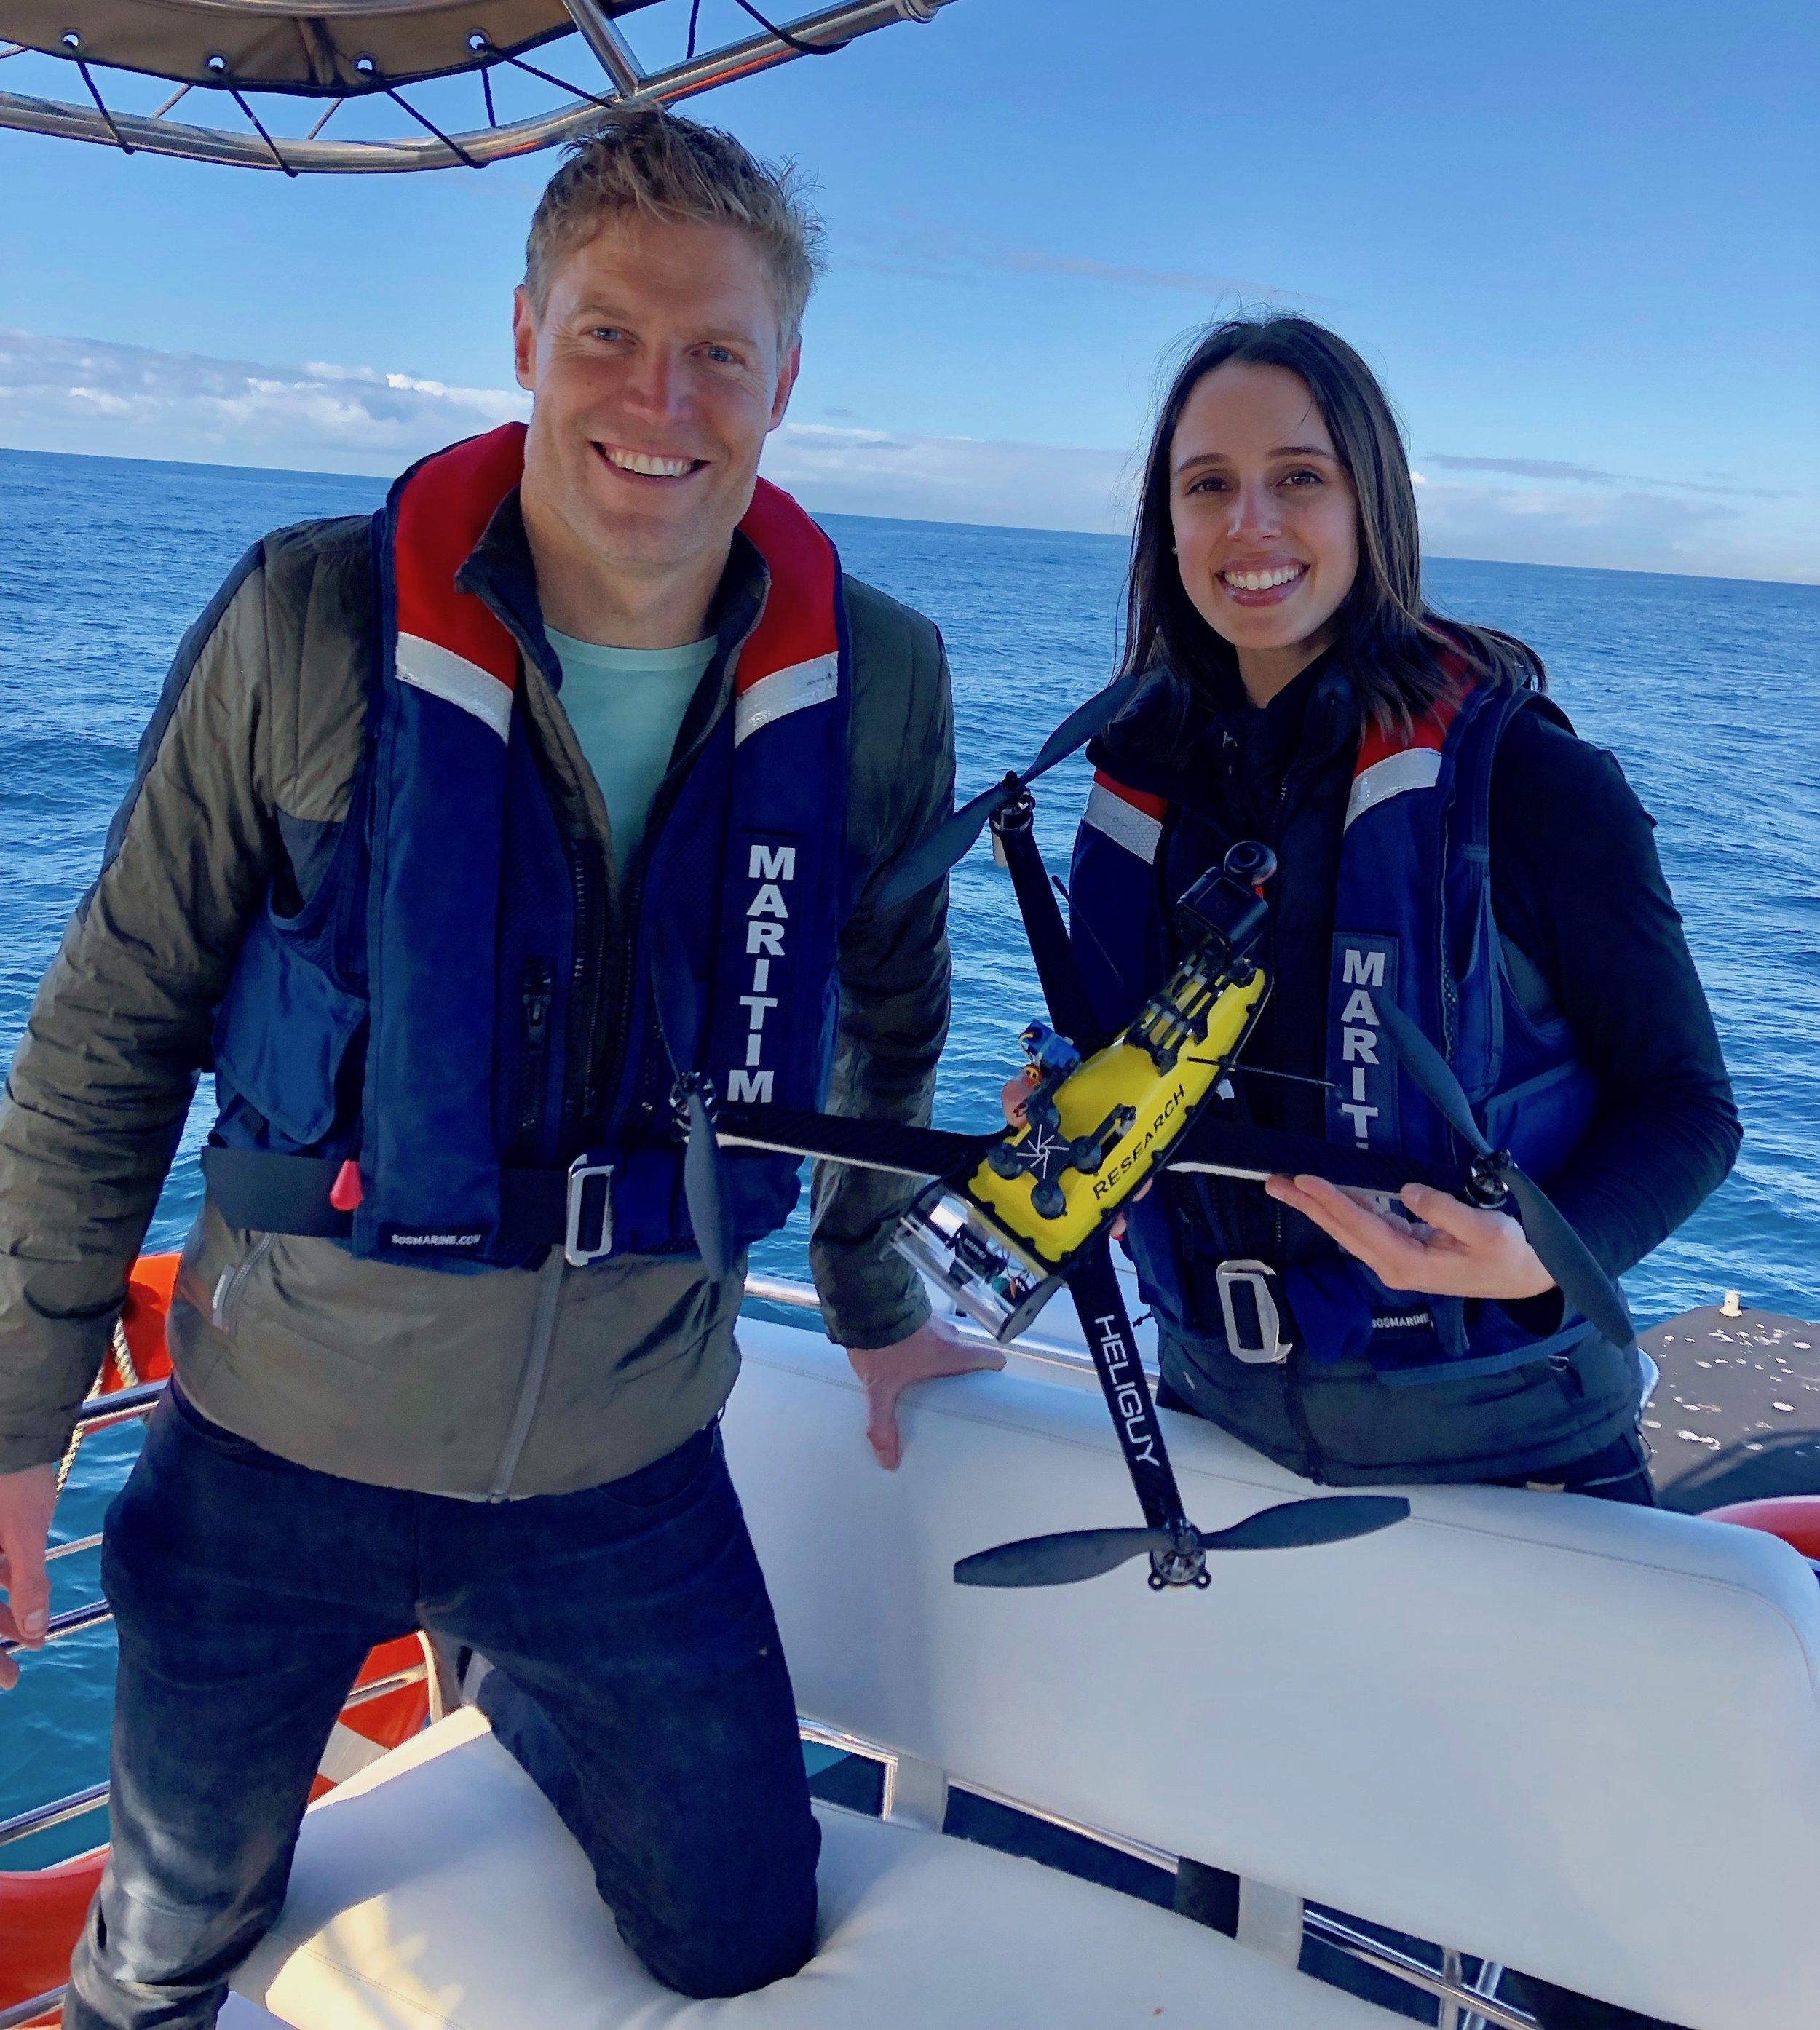 The Living Room (Channel 10) with Dr Chris Brown. - Vanessa welcomed Dr Chris onboard her whale snot collecting mission. Catch all the highlights below.